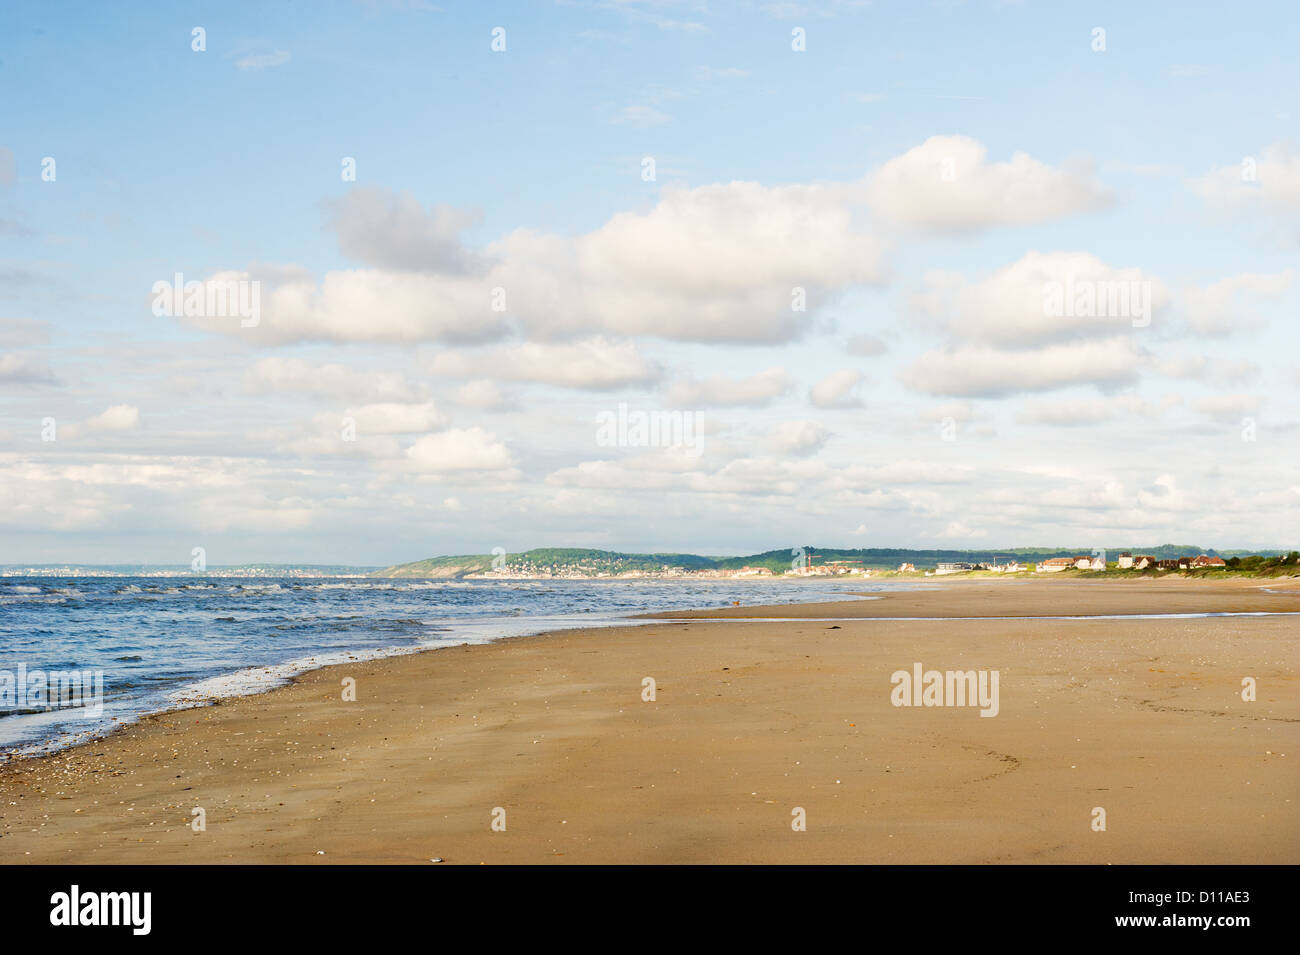 Normandy coast with beach - Stock Image